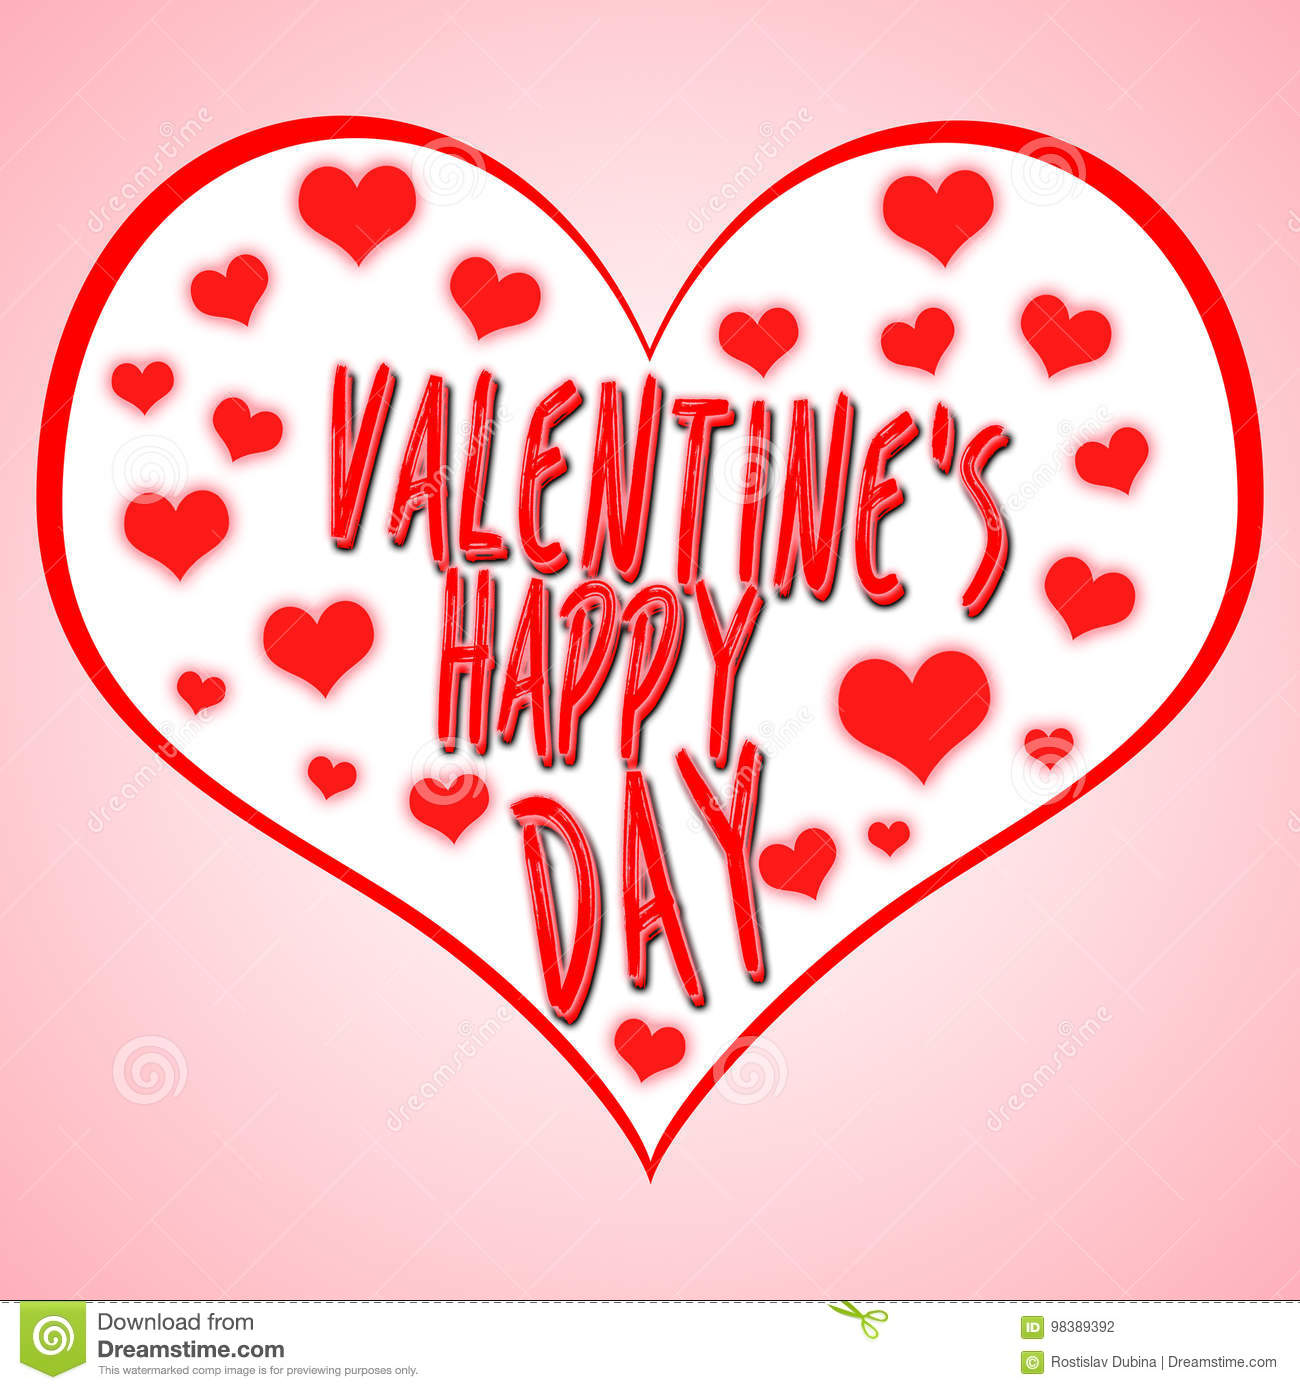 Valentine`s day concept illustration with heart symbol suitable for advertising and promotion. Happy valentines day and weeding .